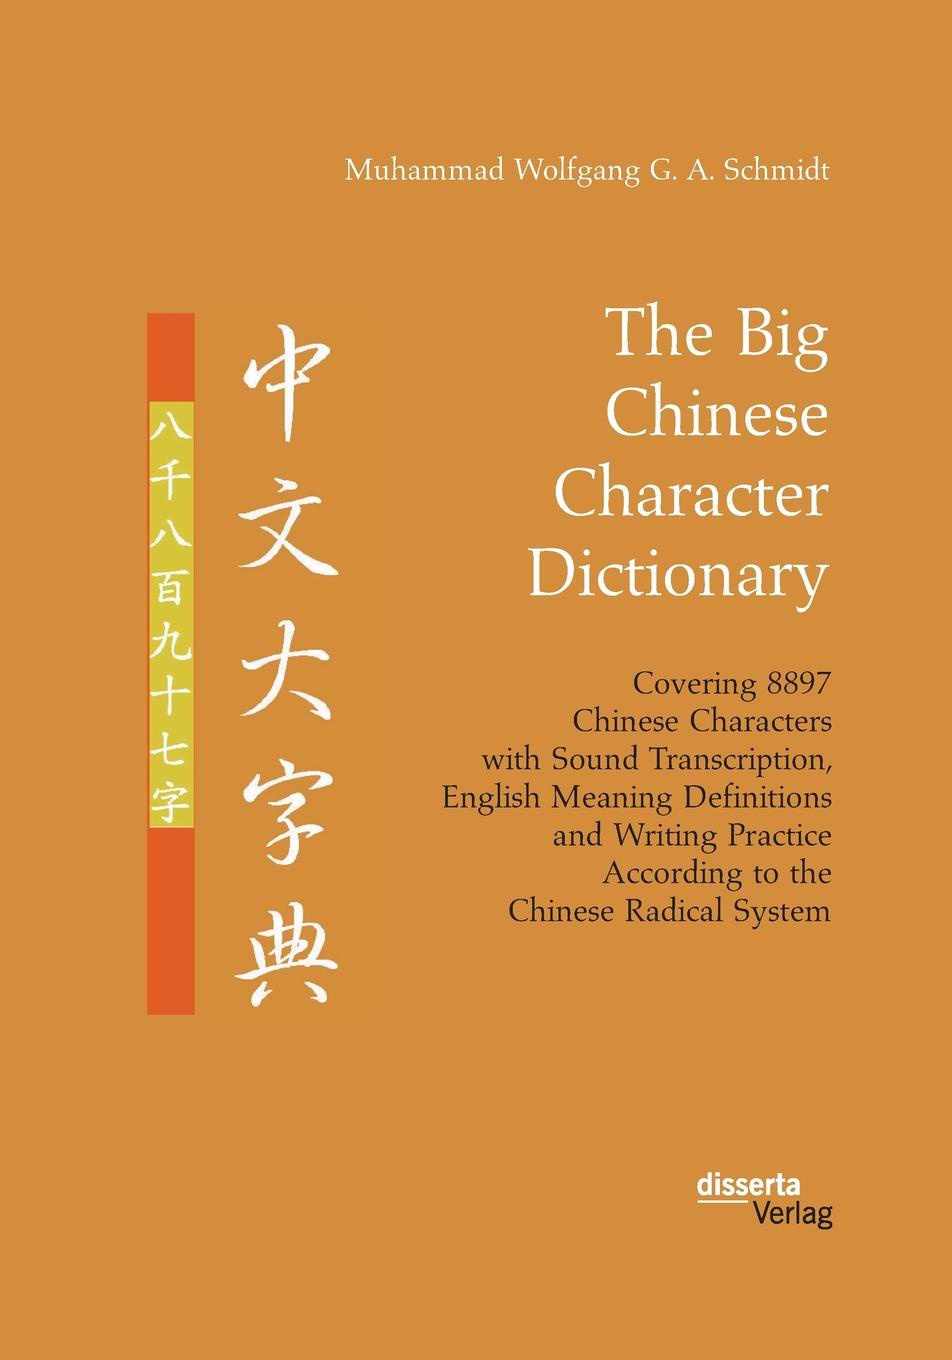 Muhammad Wolfgang G. A. Schmidt The Big Chinese Character Dictionary. Covering 8897 Chinese Characters with Sound Transcription, English Meaning Definitions and Writing Practice According to the Chinese Radical System chinese made easy for kids workbook 3 arabic edition simplified chinese version by yamin ma chinese study book for children